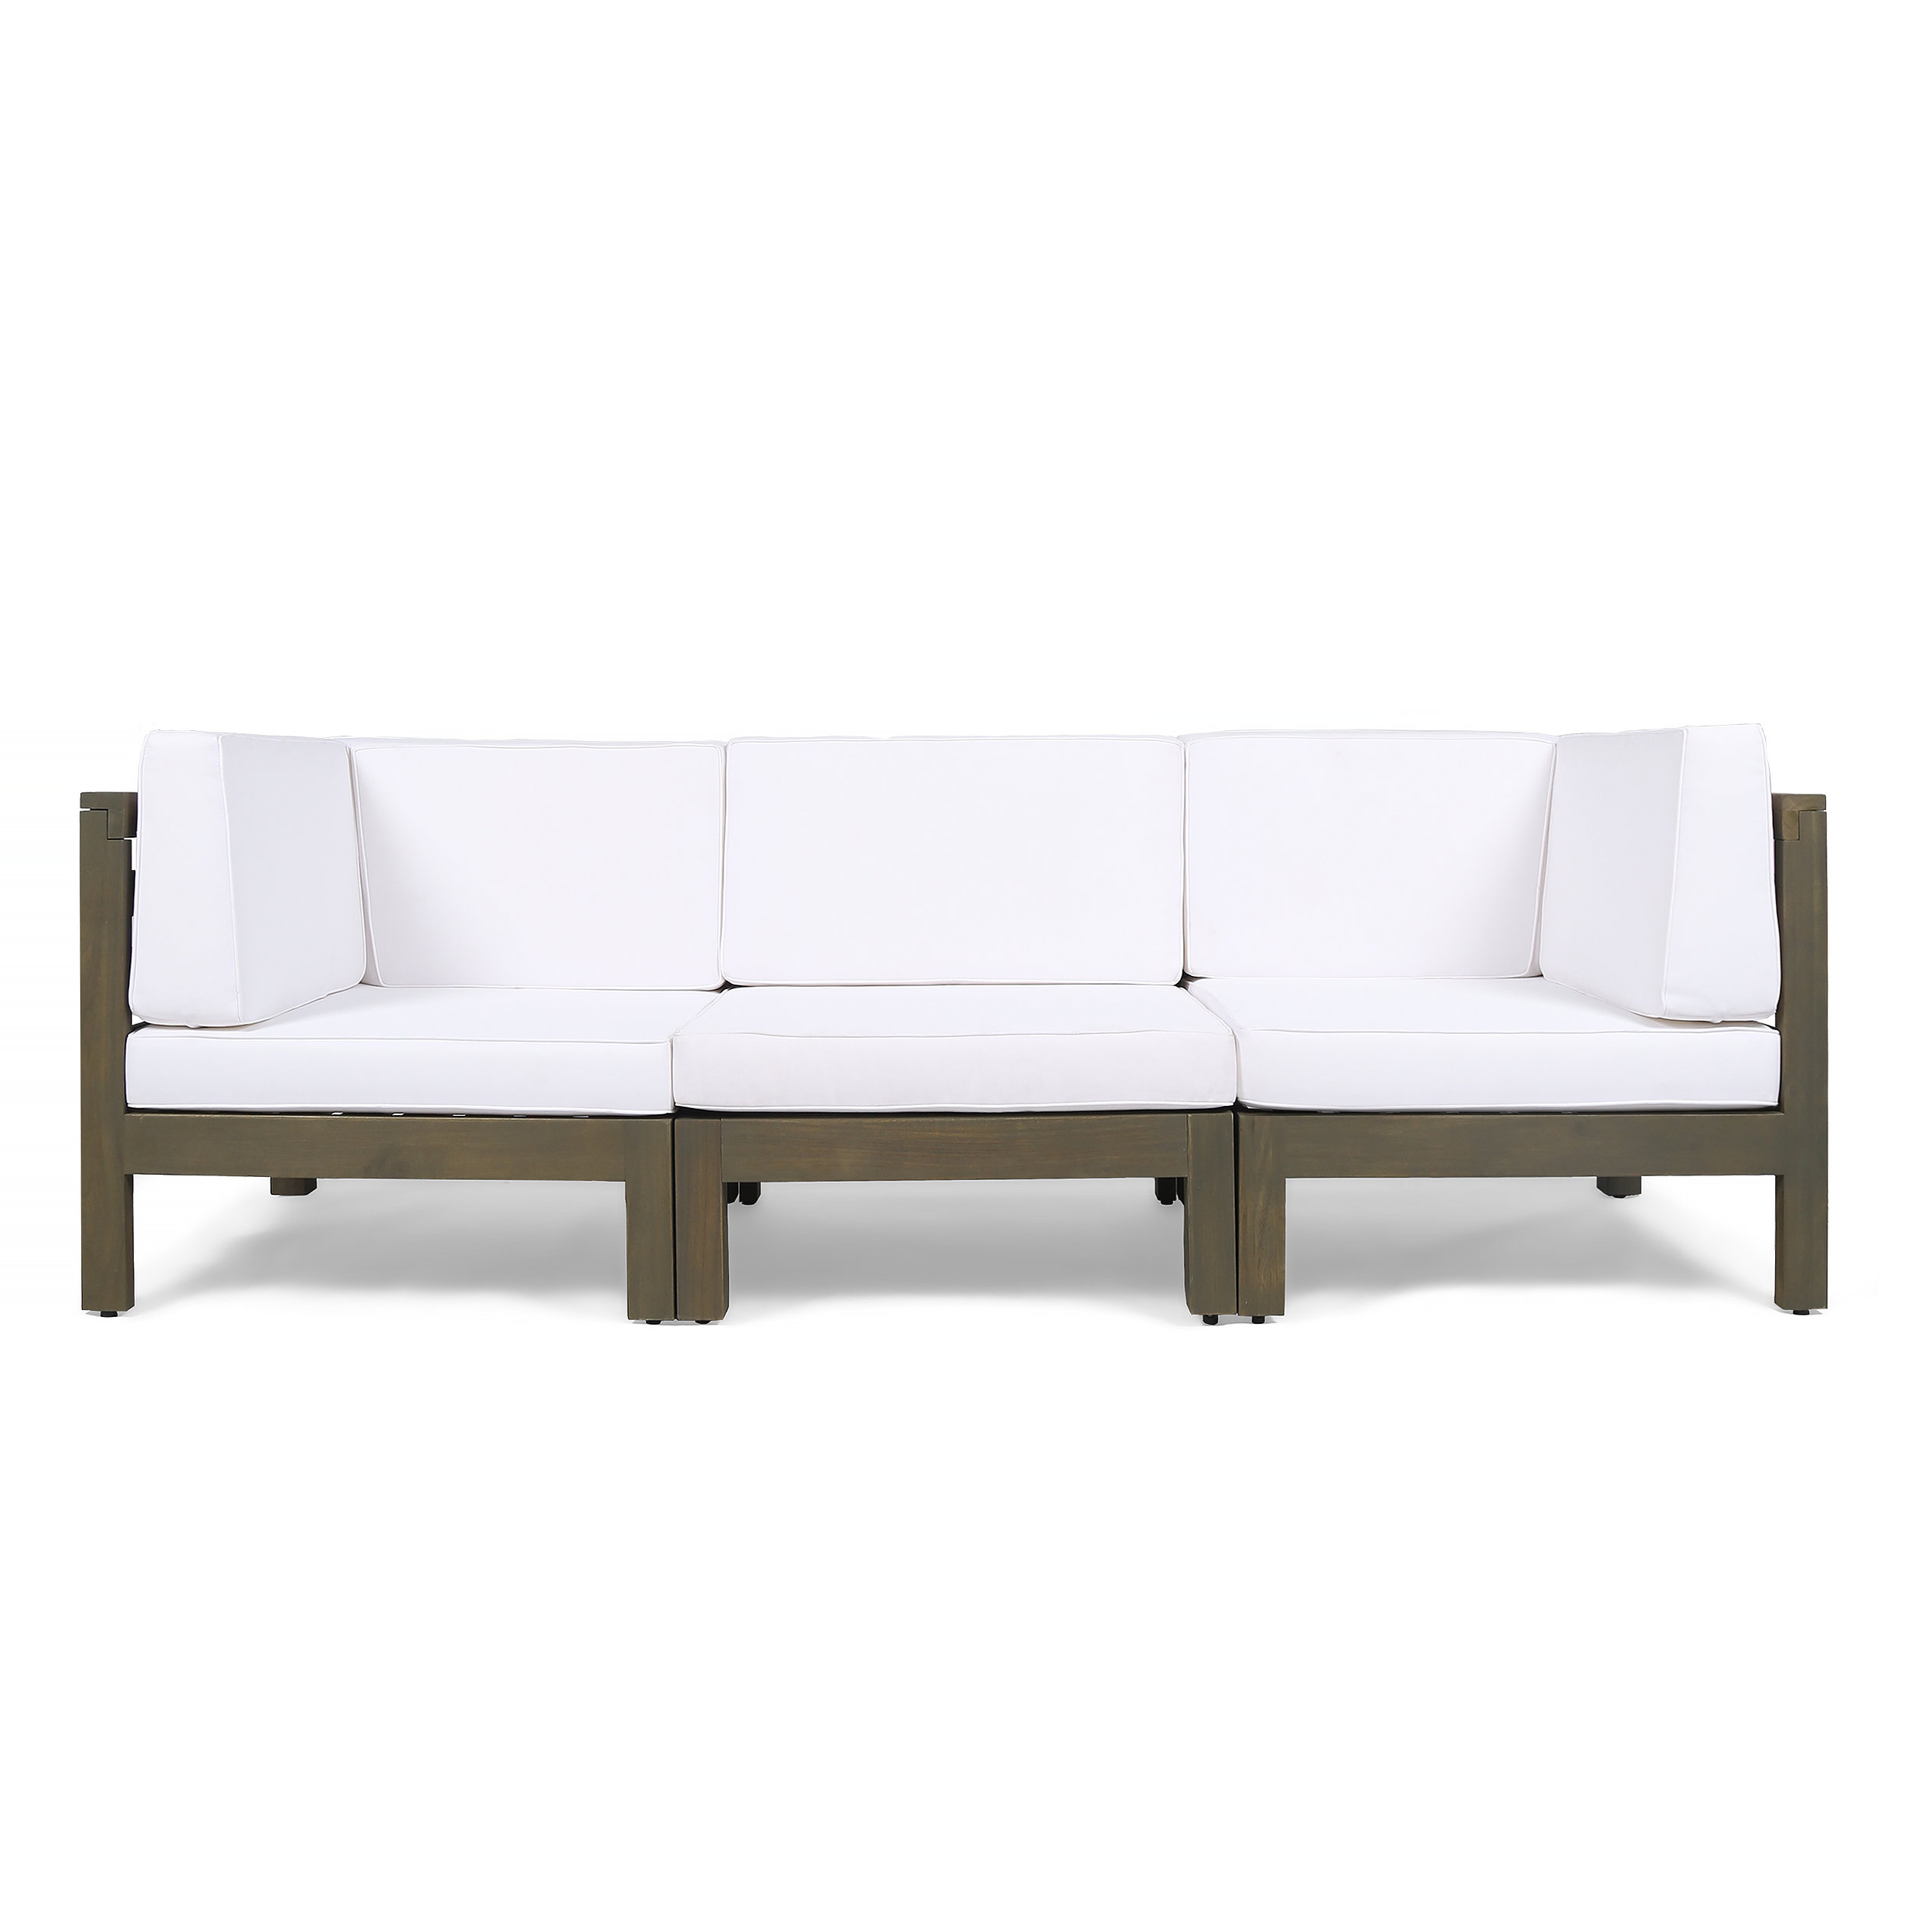 Seaham Teak Patio Sofa With Cushions Regarding Current Seaham Patio Sectionals With Cushions (View 5 of 20)